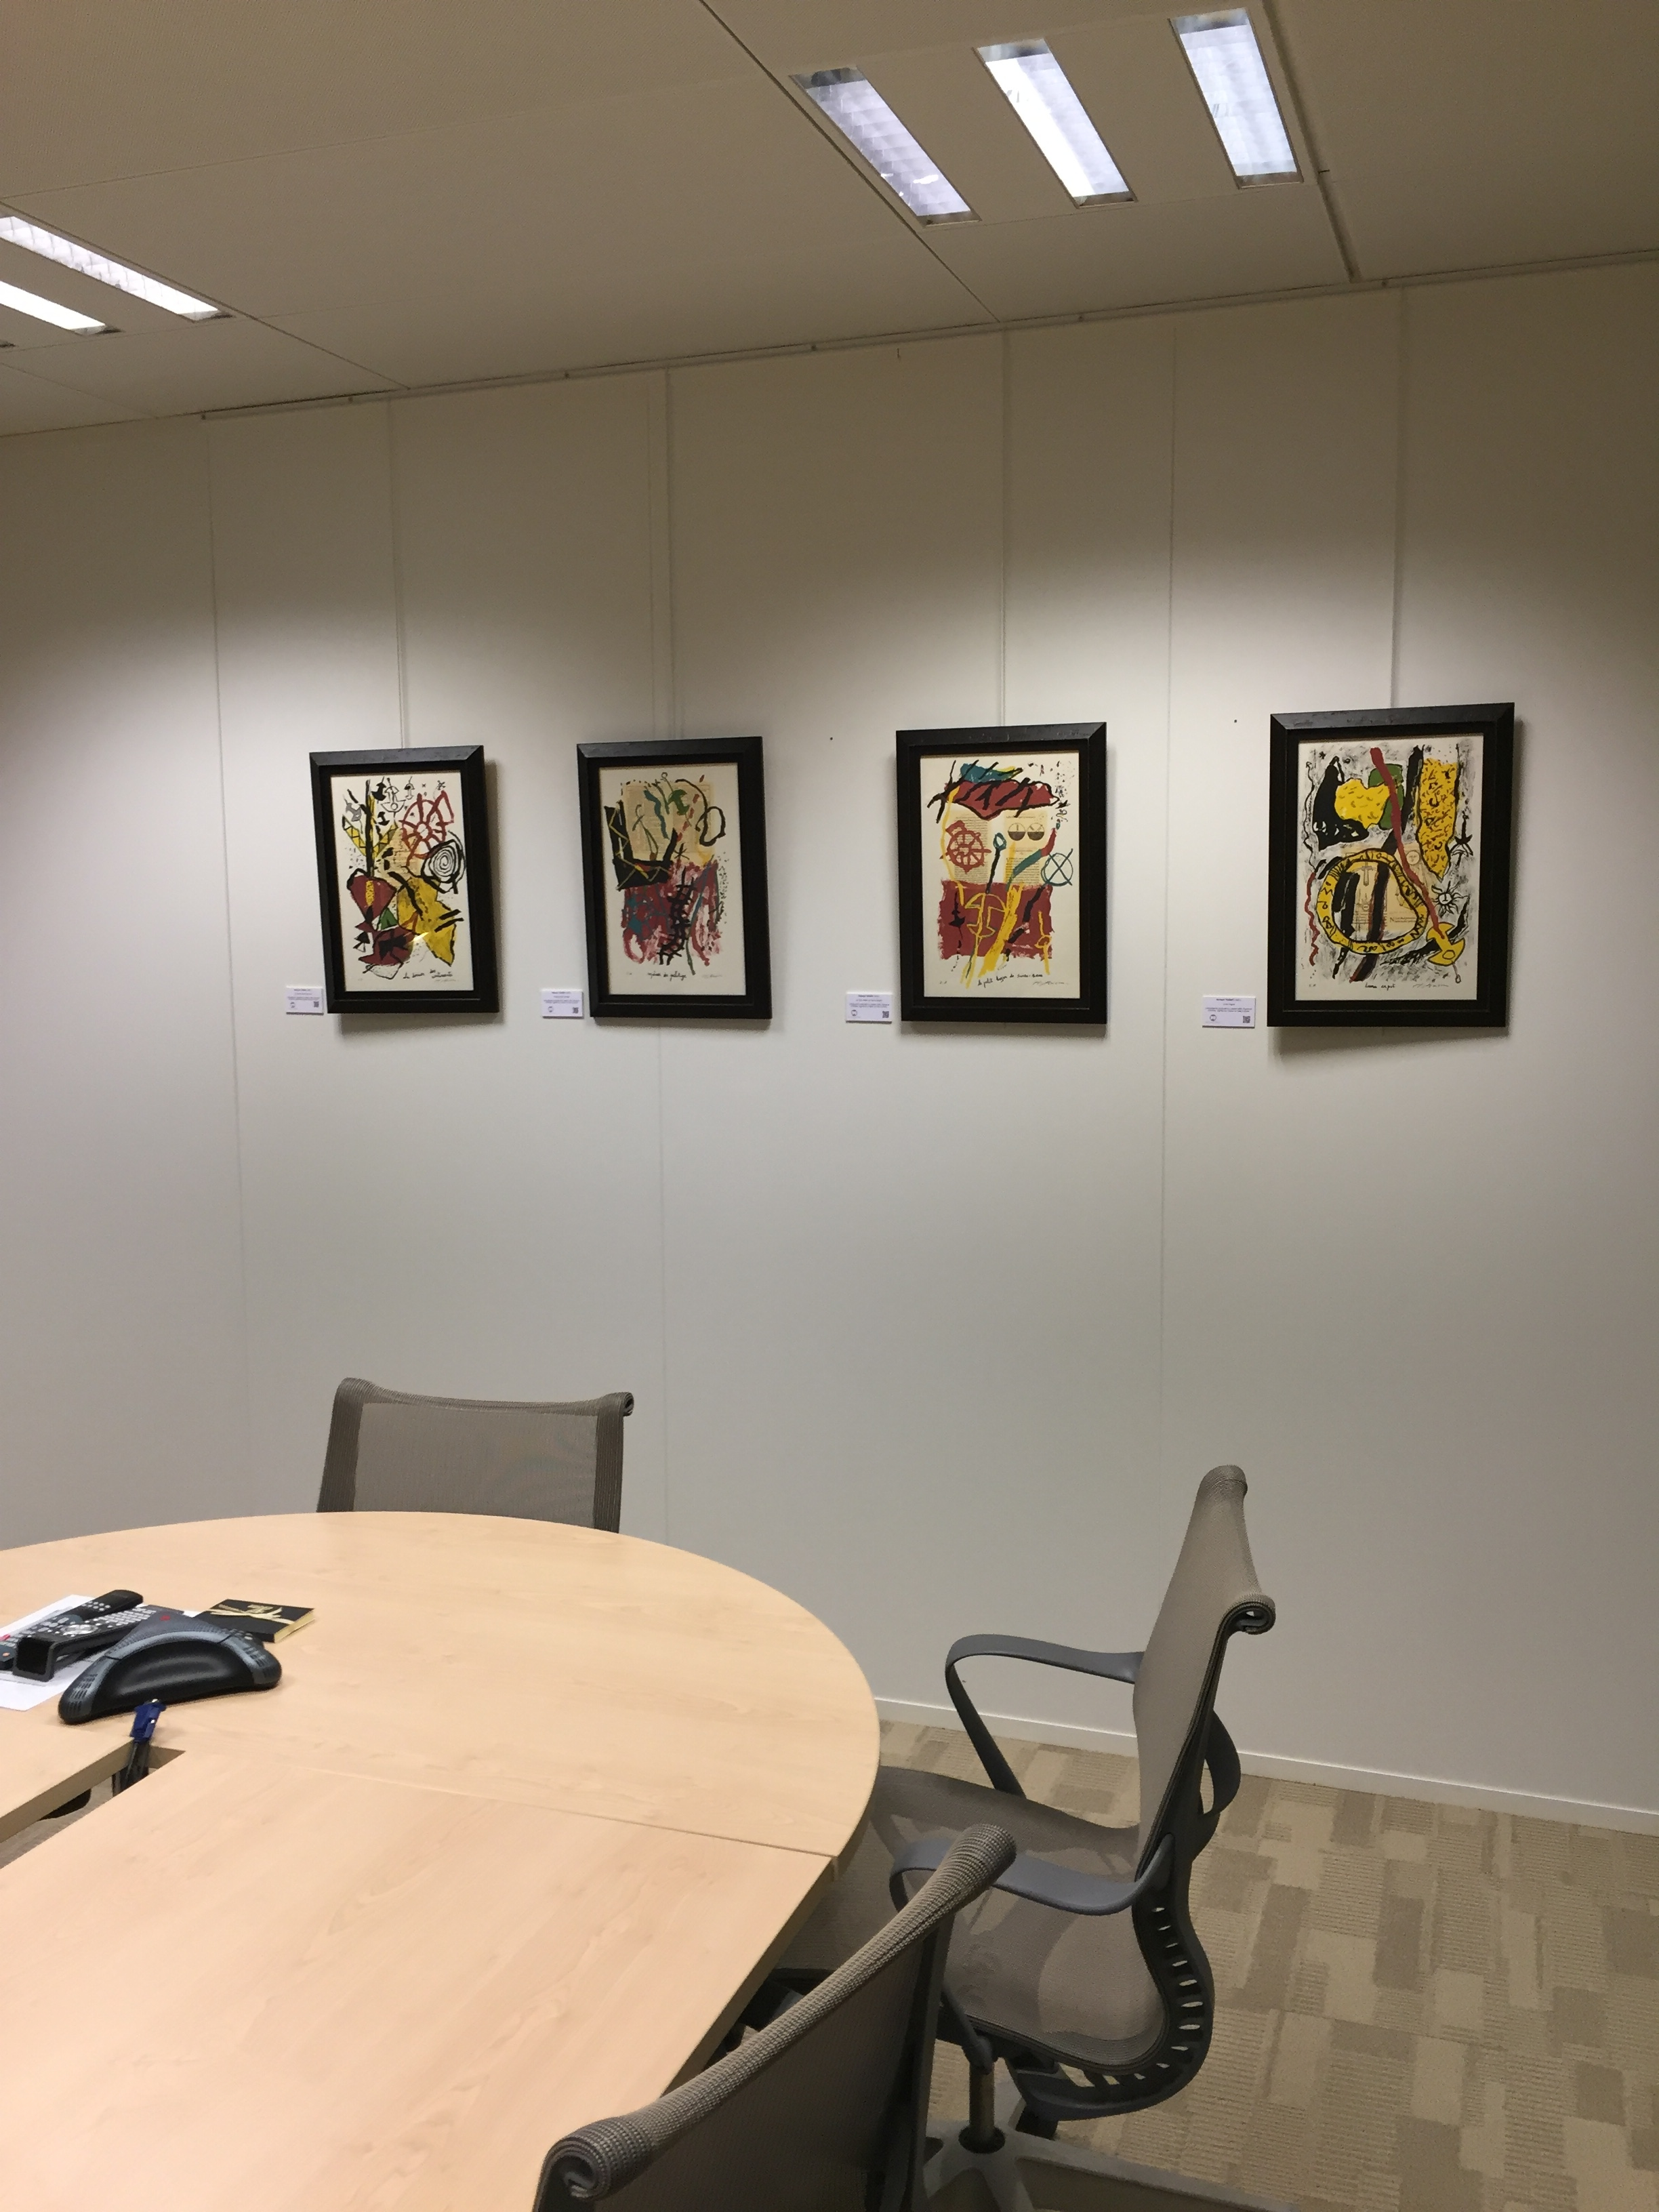 Series of signed original lithographs (prints of artist)